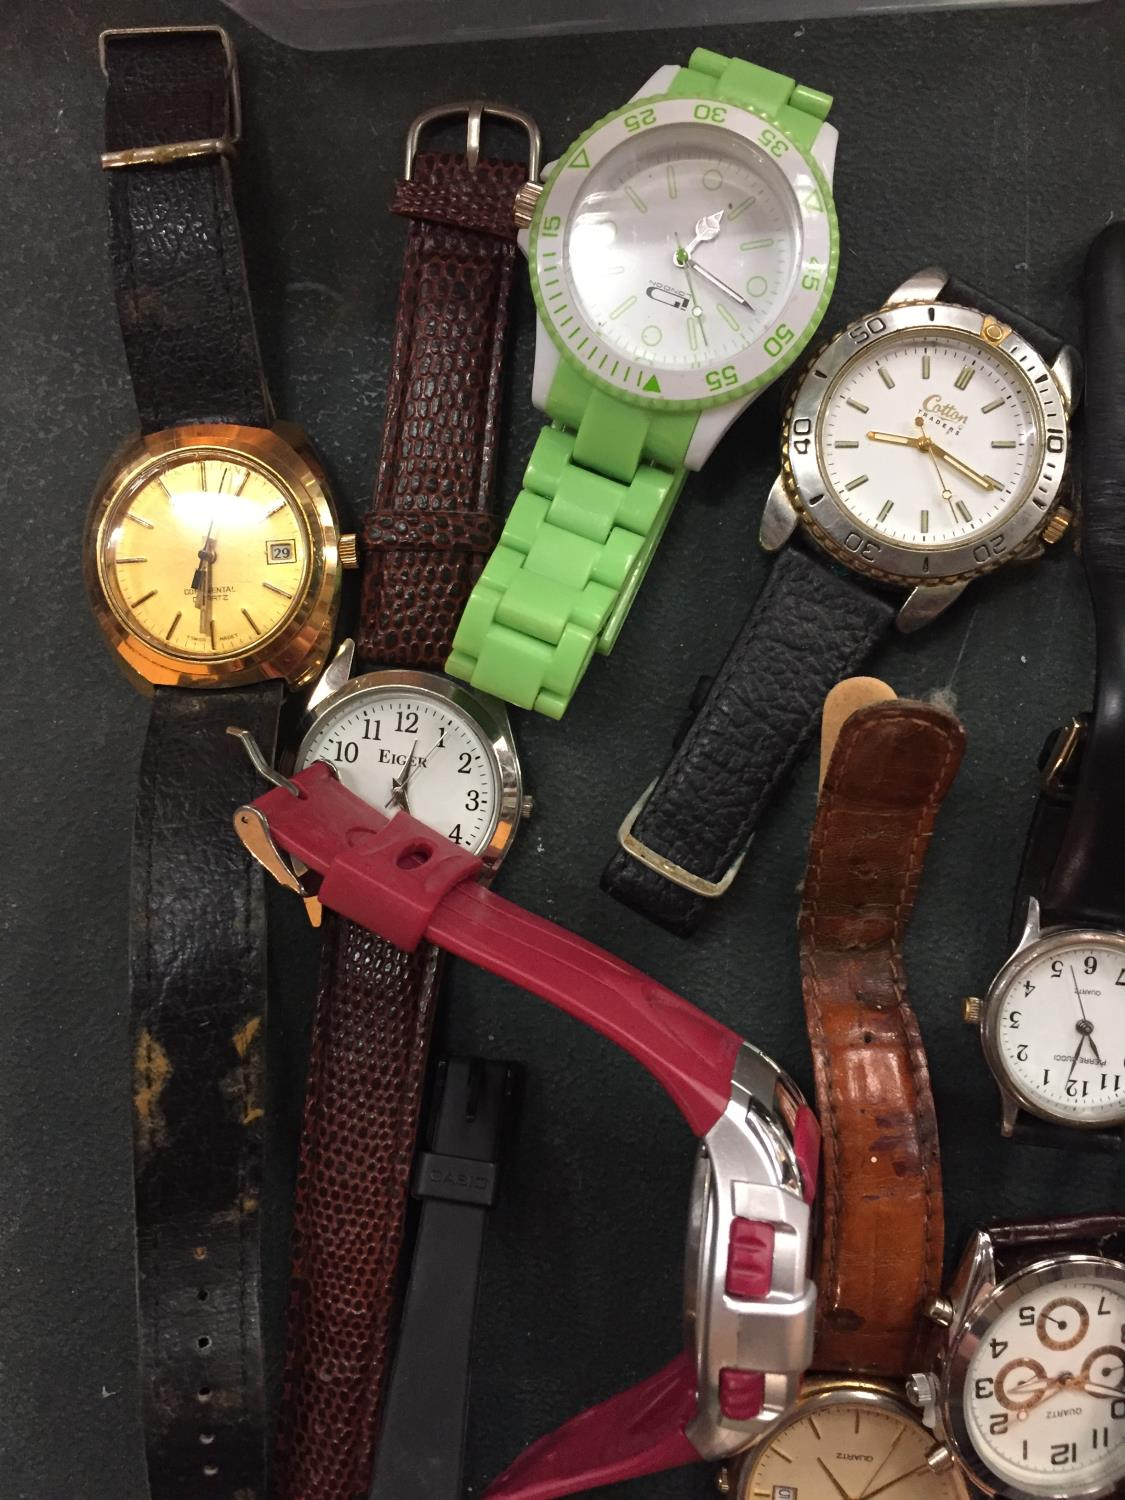 A COLLECTION OF VARIOUS FASHION WATCHES - Image 3 of 3